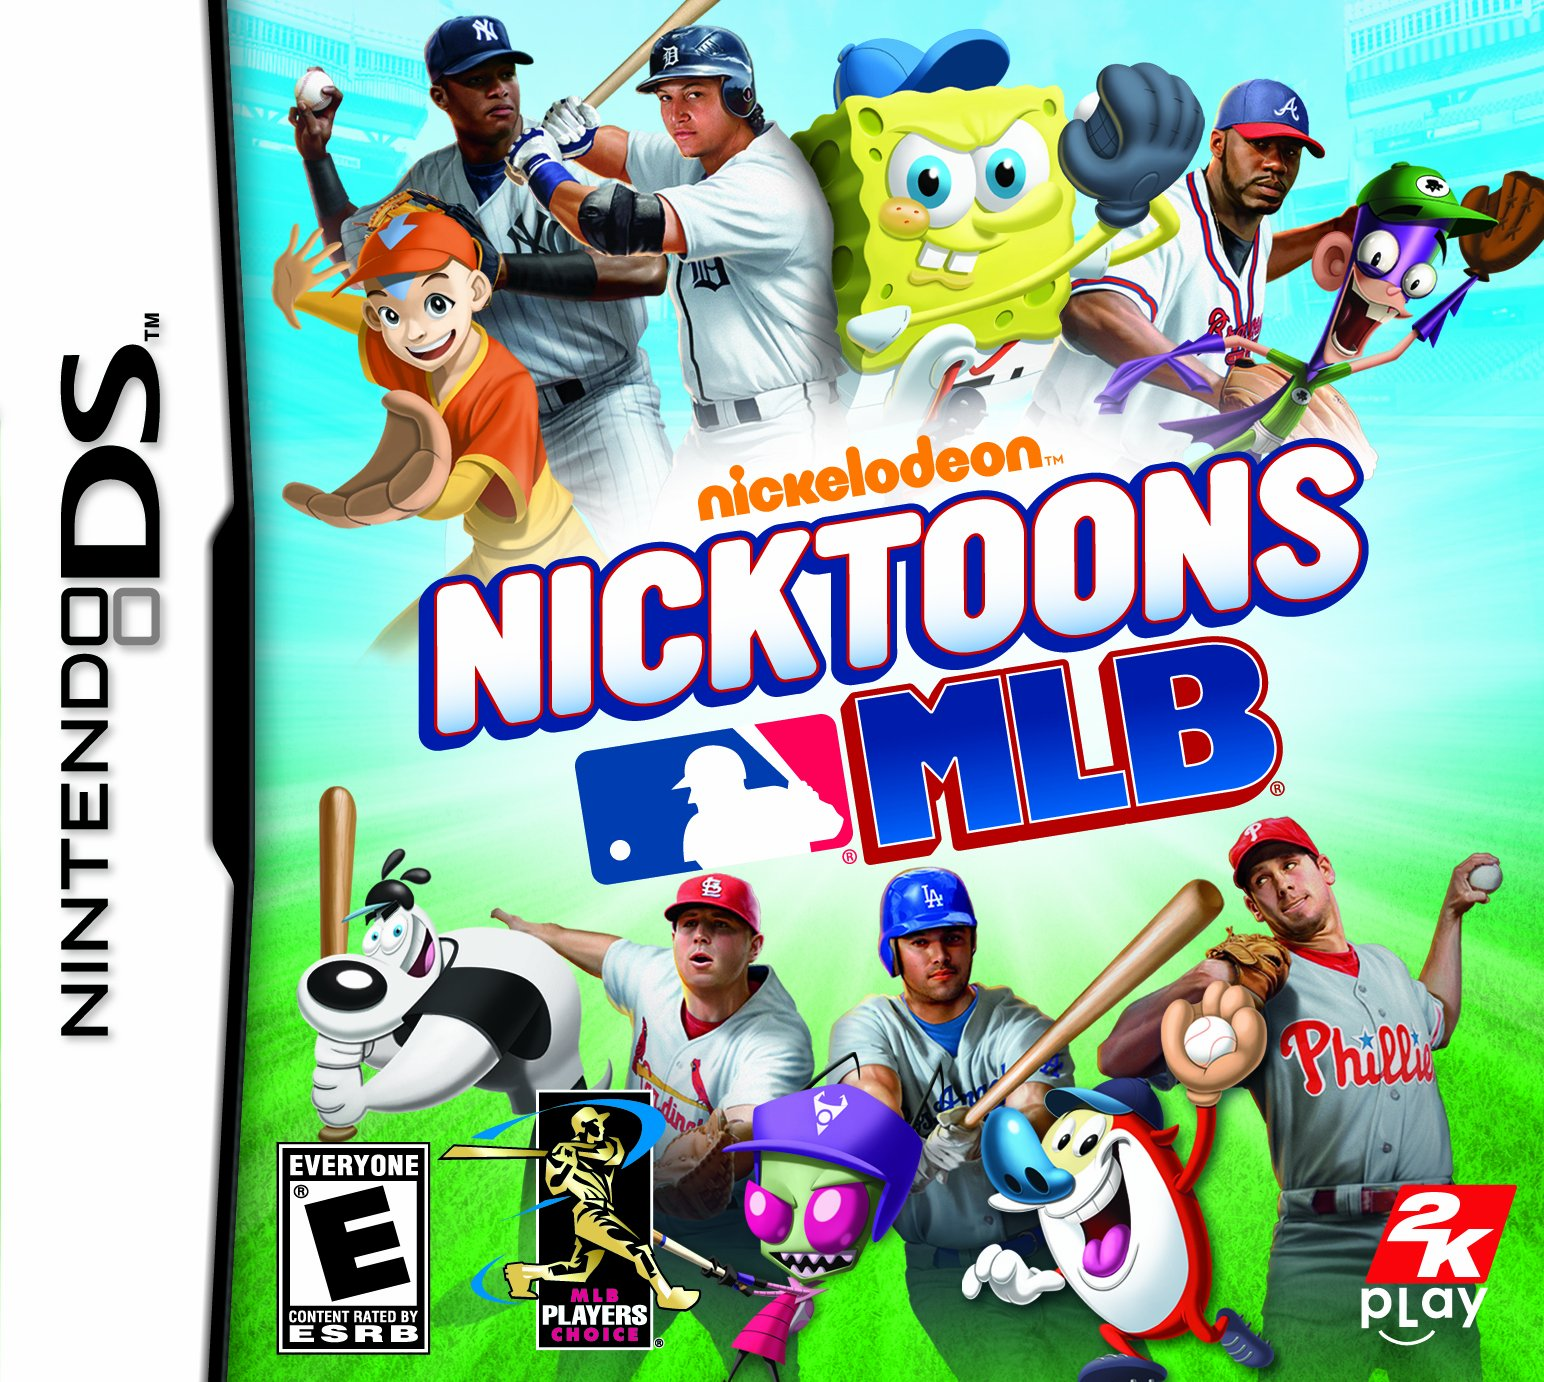 Nicktoons MLB Release Date (Xbox 360, Wii, DS